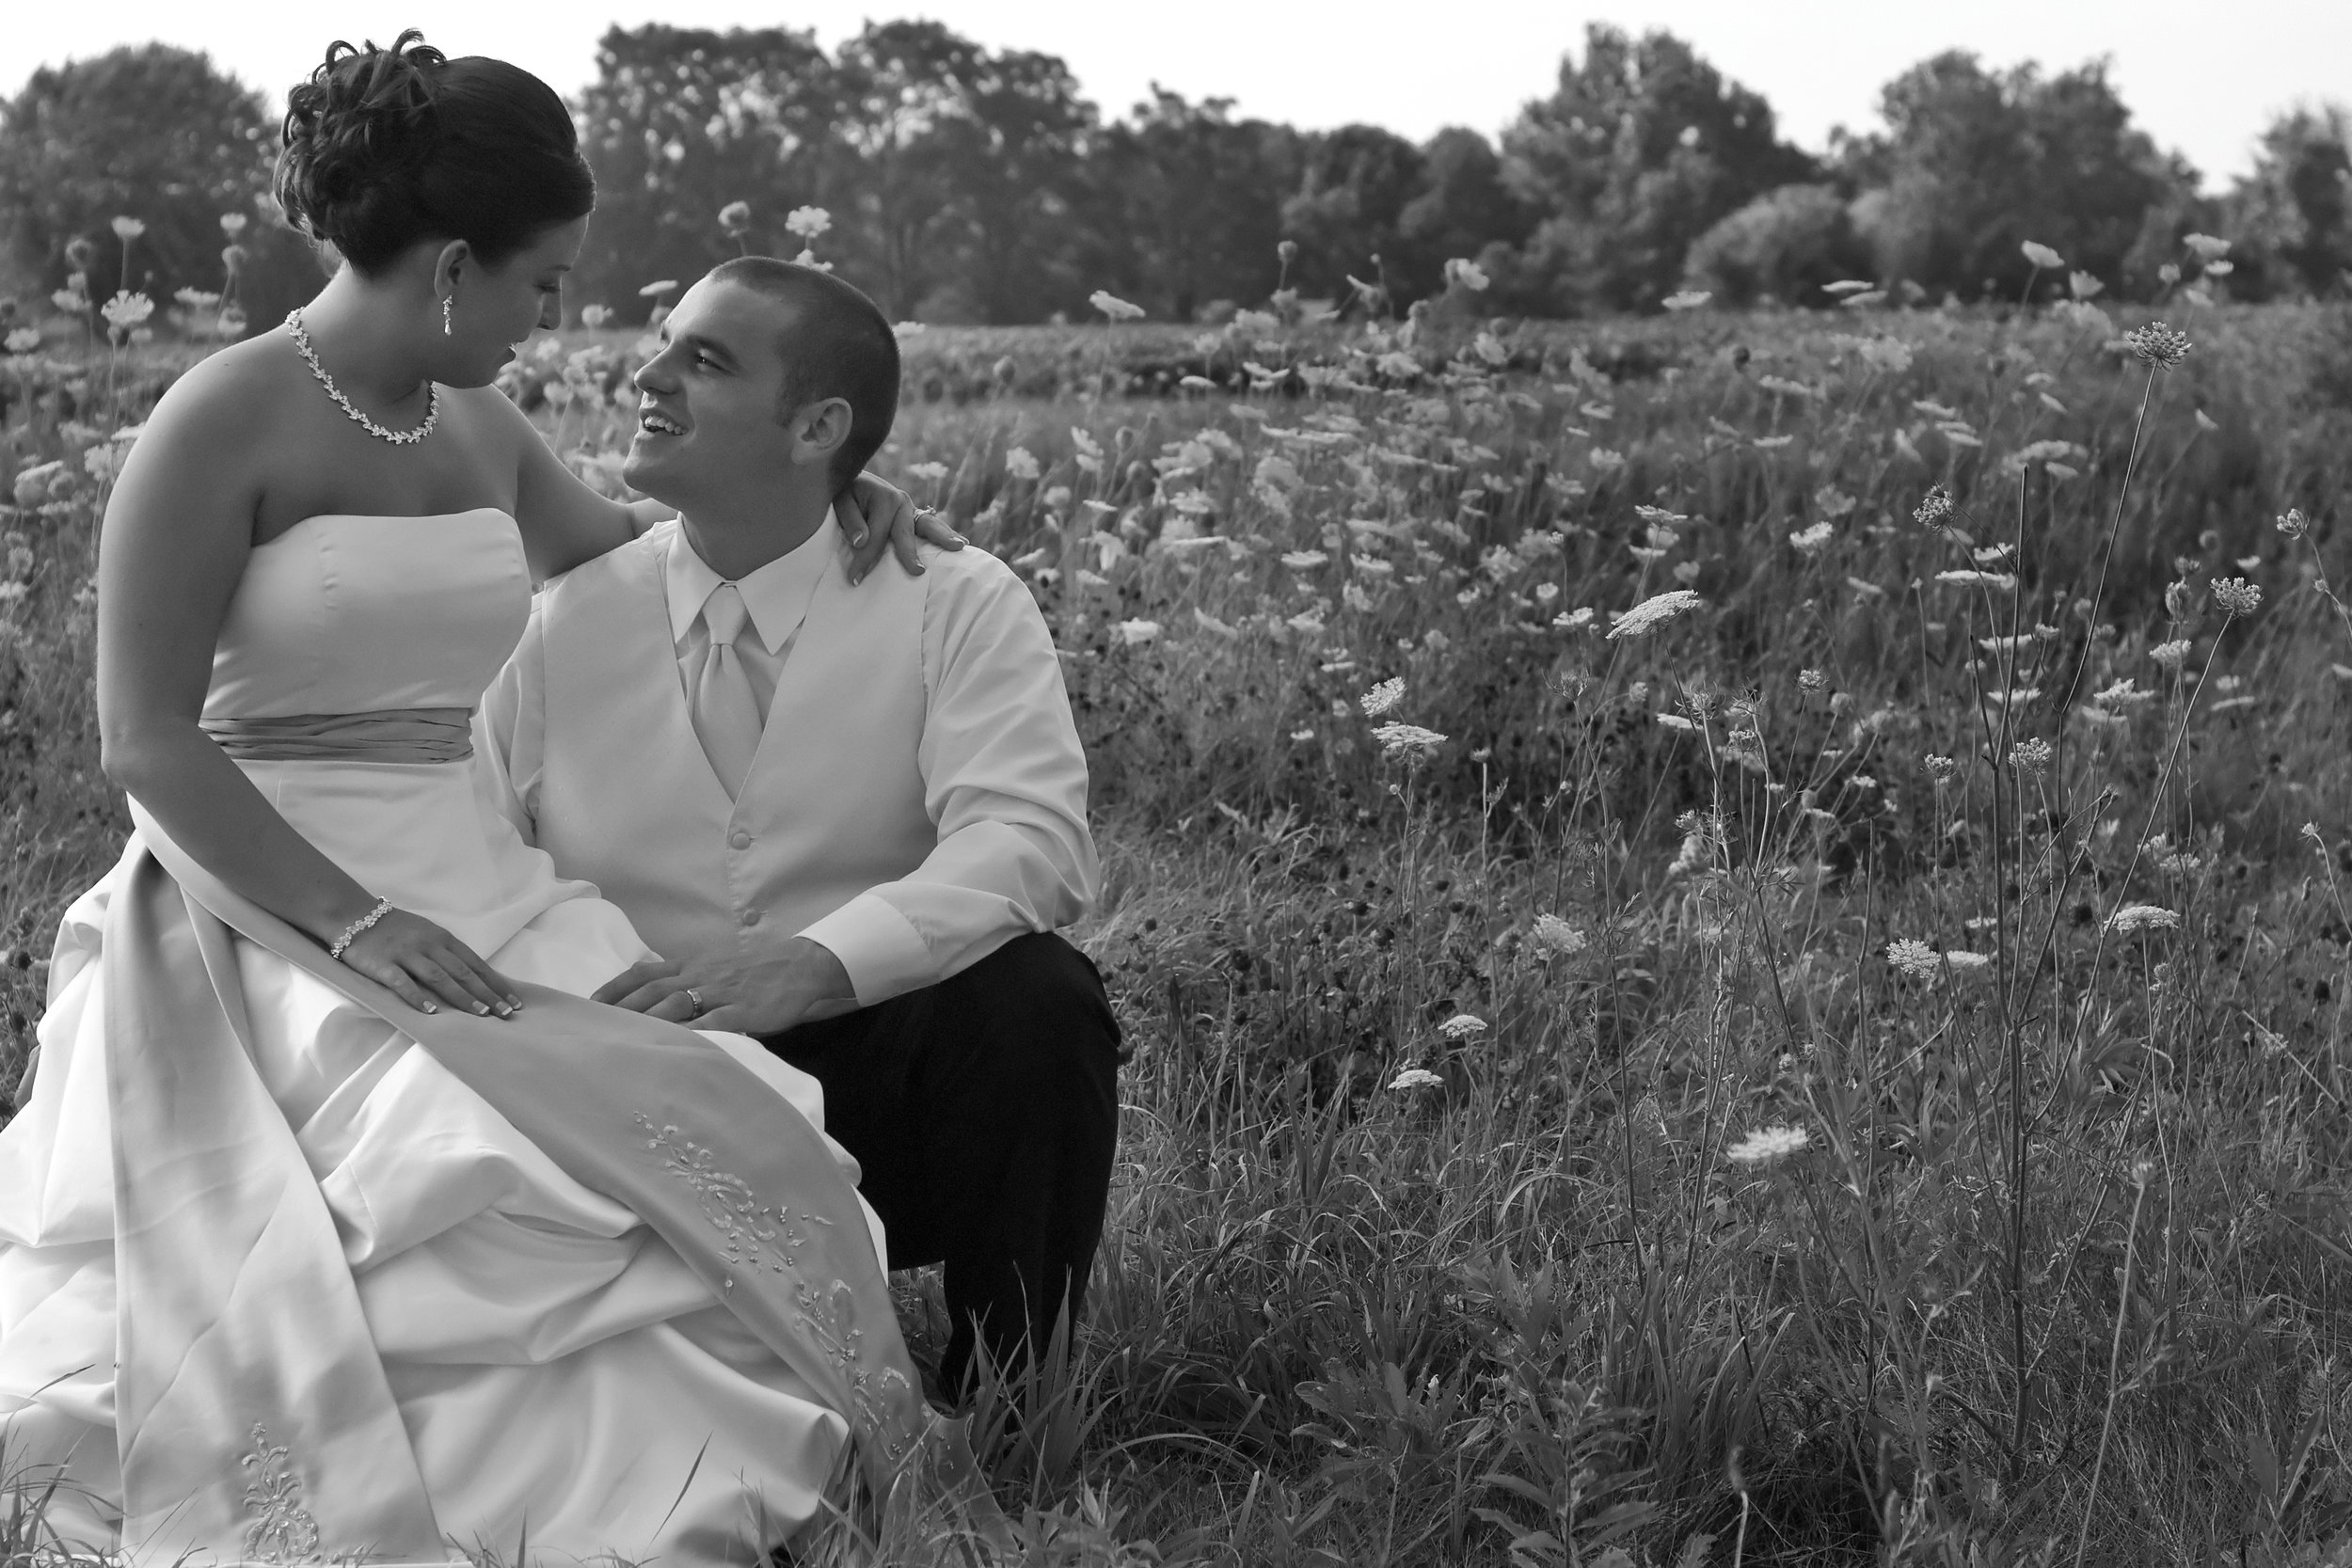 A Bride sitting on her groom's knee gazing into his face in a field